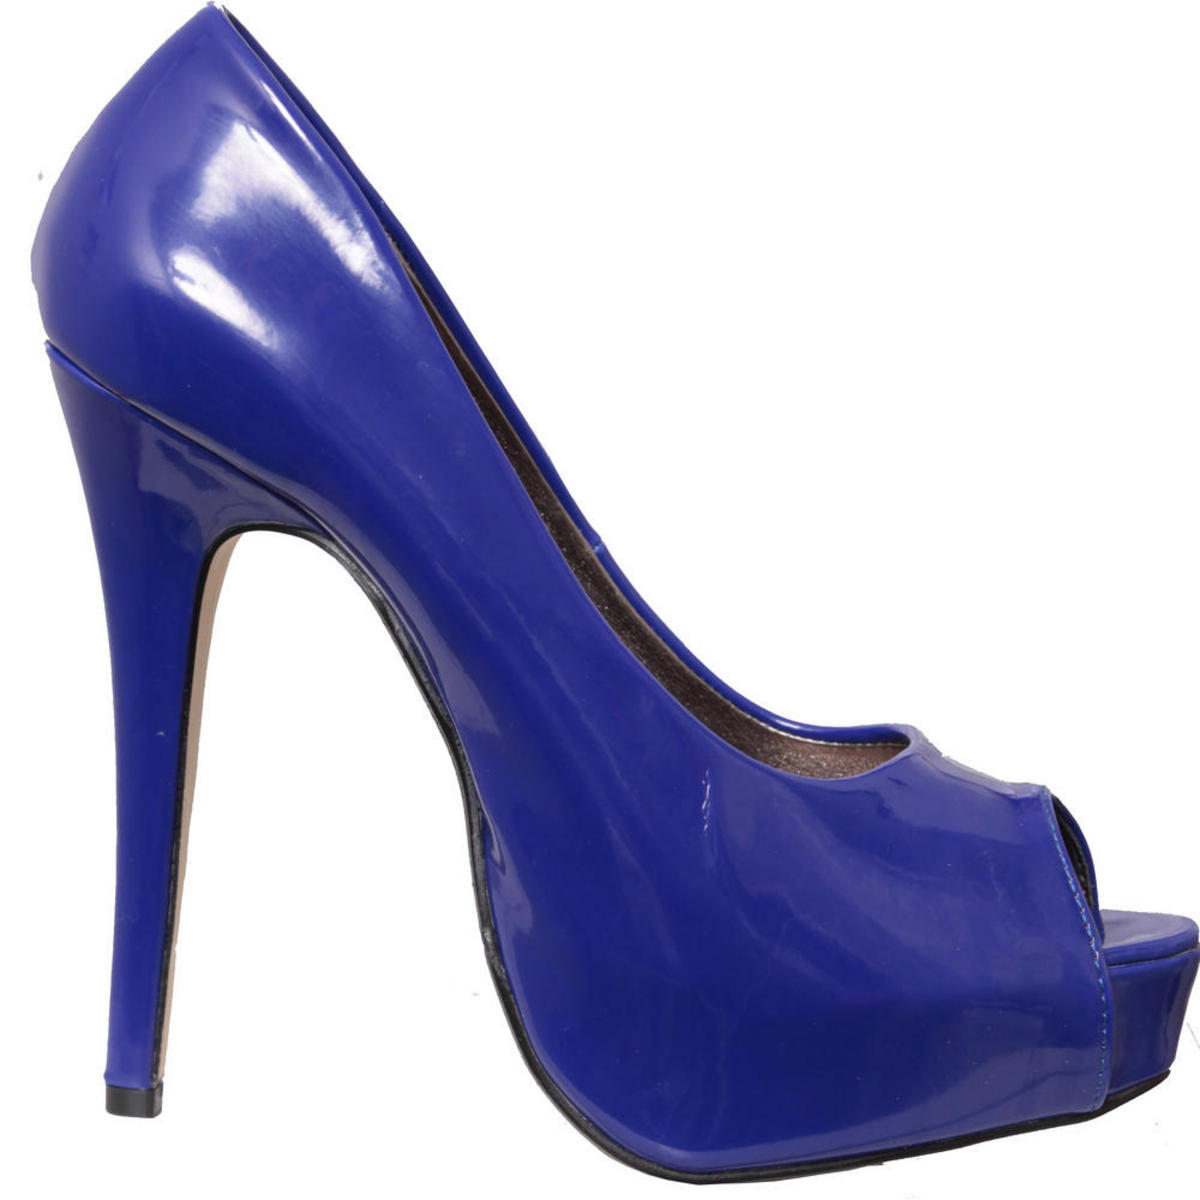 Blue Patent Peeptoe Platform Shoe Preview